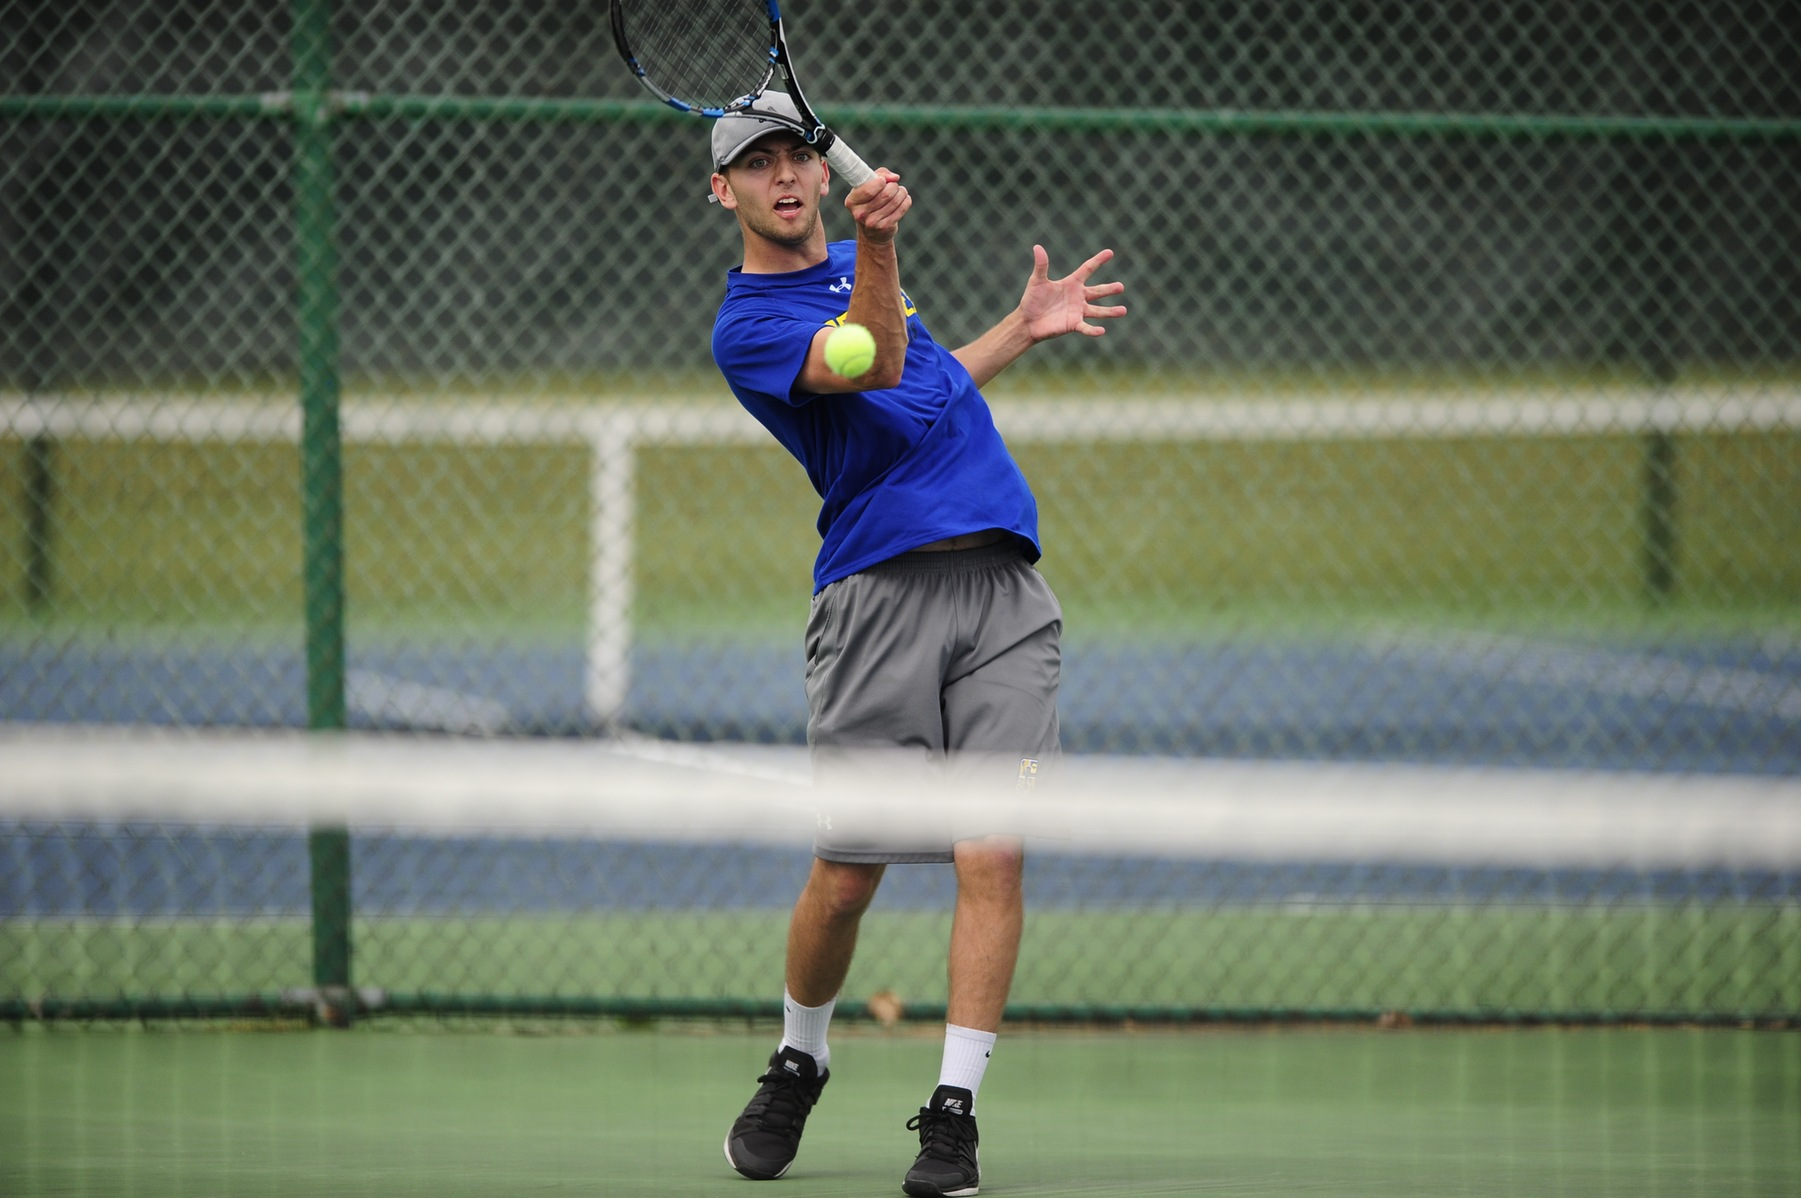 Men's Tennis Dominates Both Matches at Home on Saturday